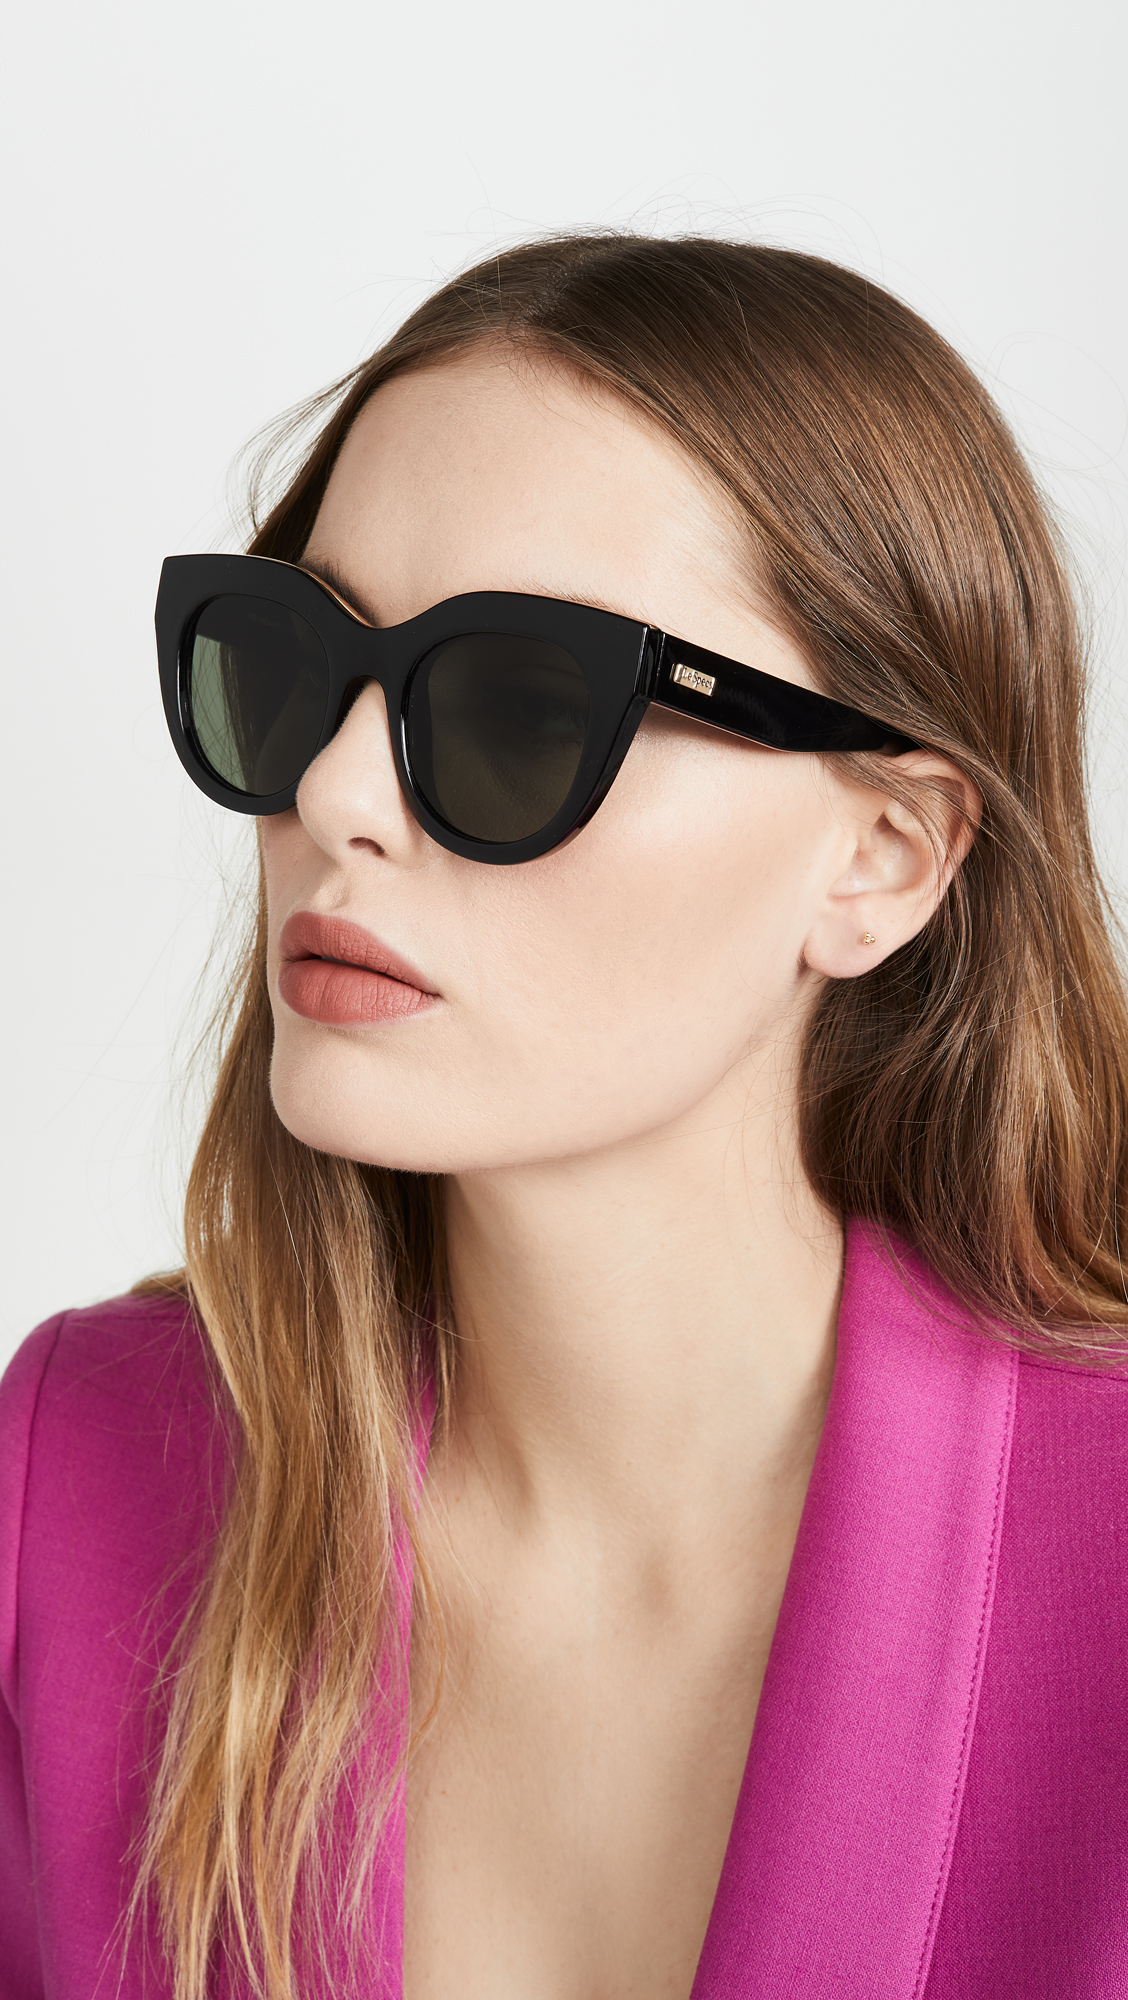 Le Specs Air Heart Sunglasses   A Few Must-Have Spring Accessories